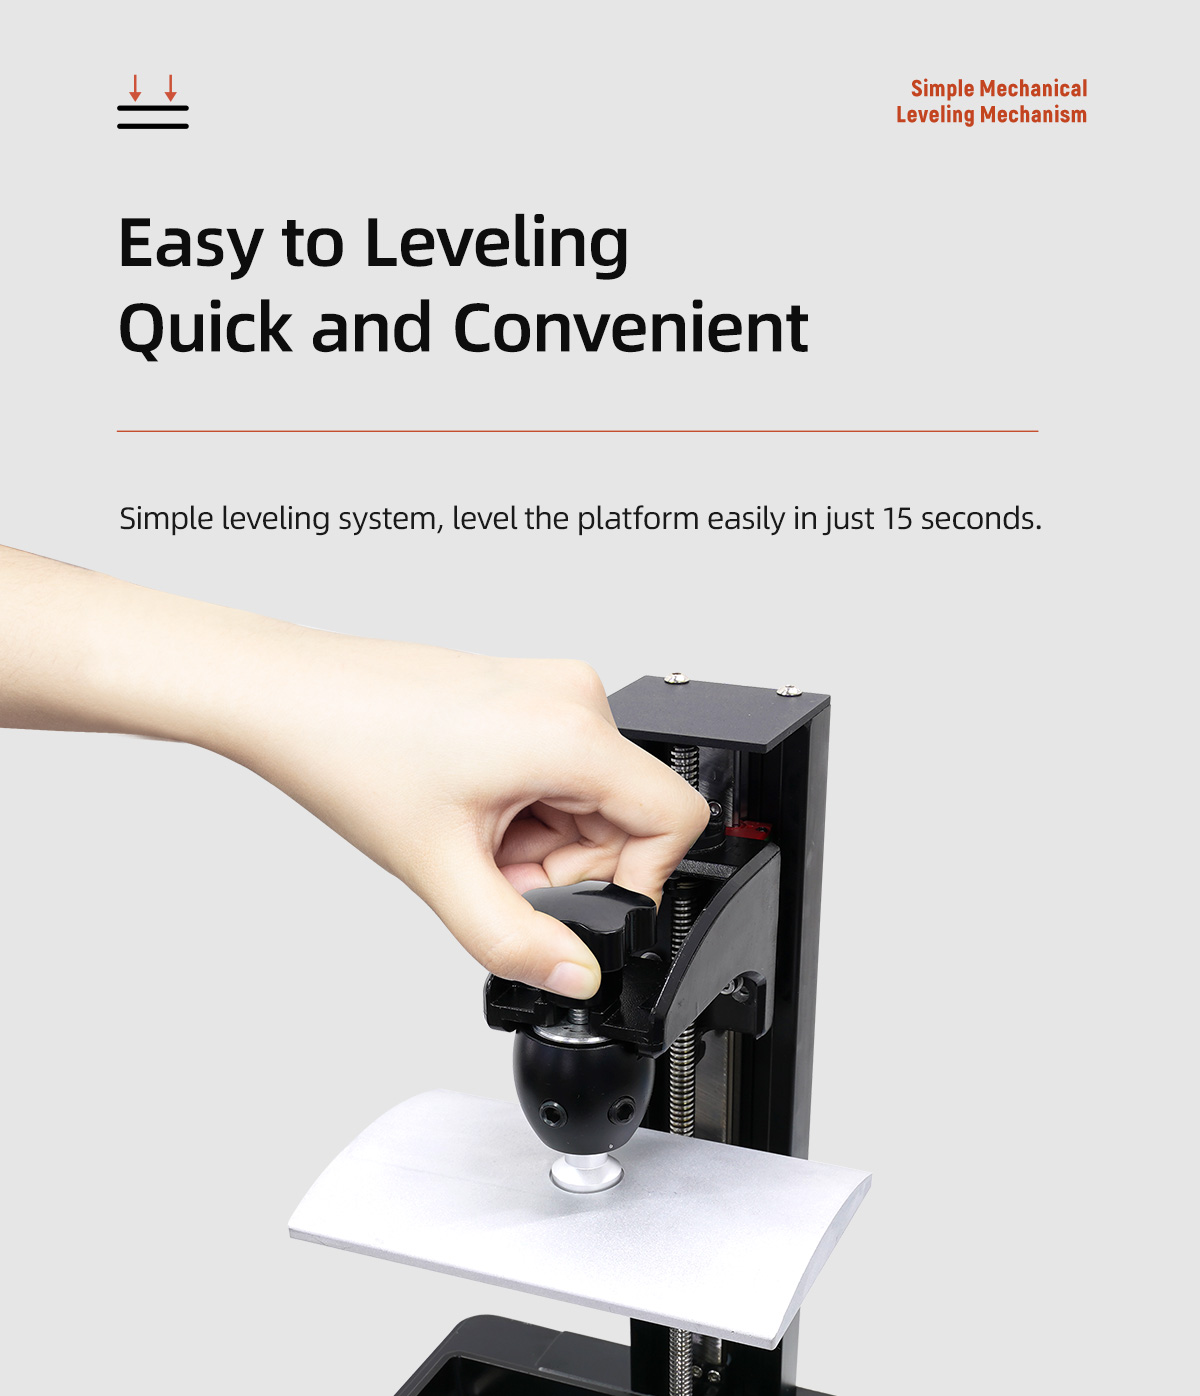 Easy to Leveling Quick and Convenient